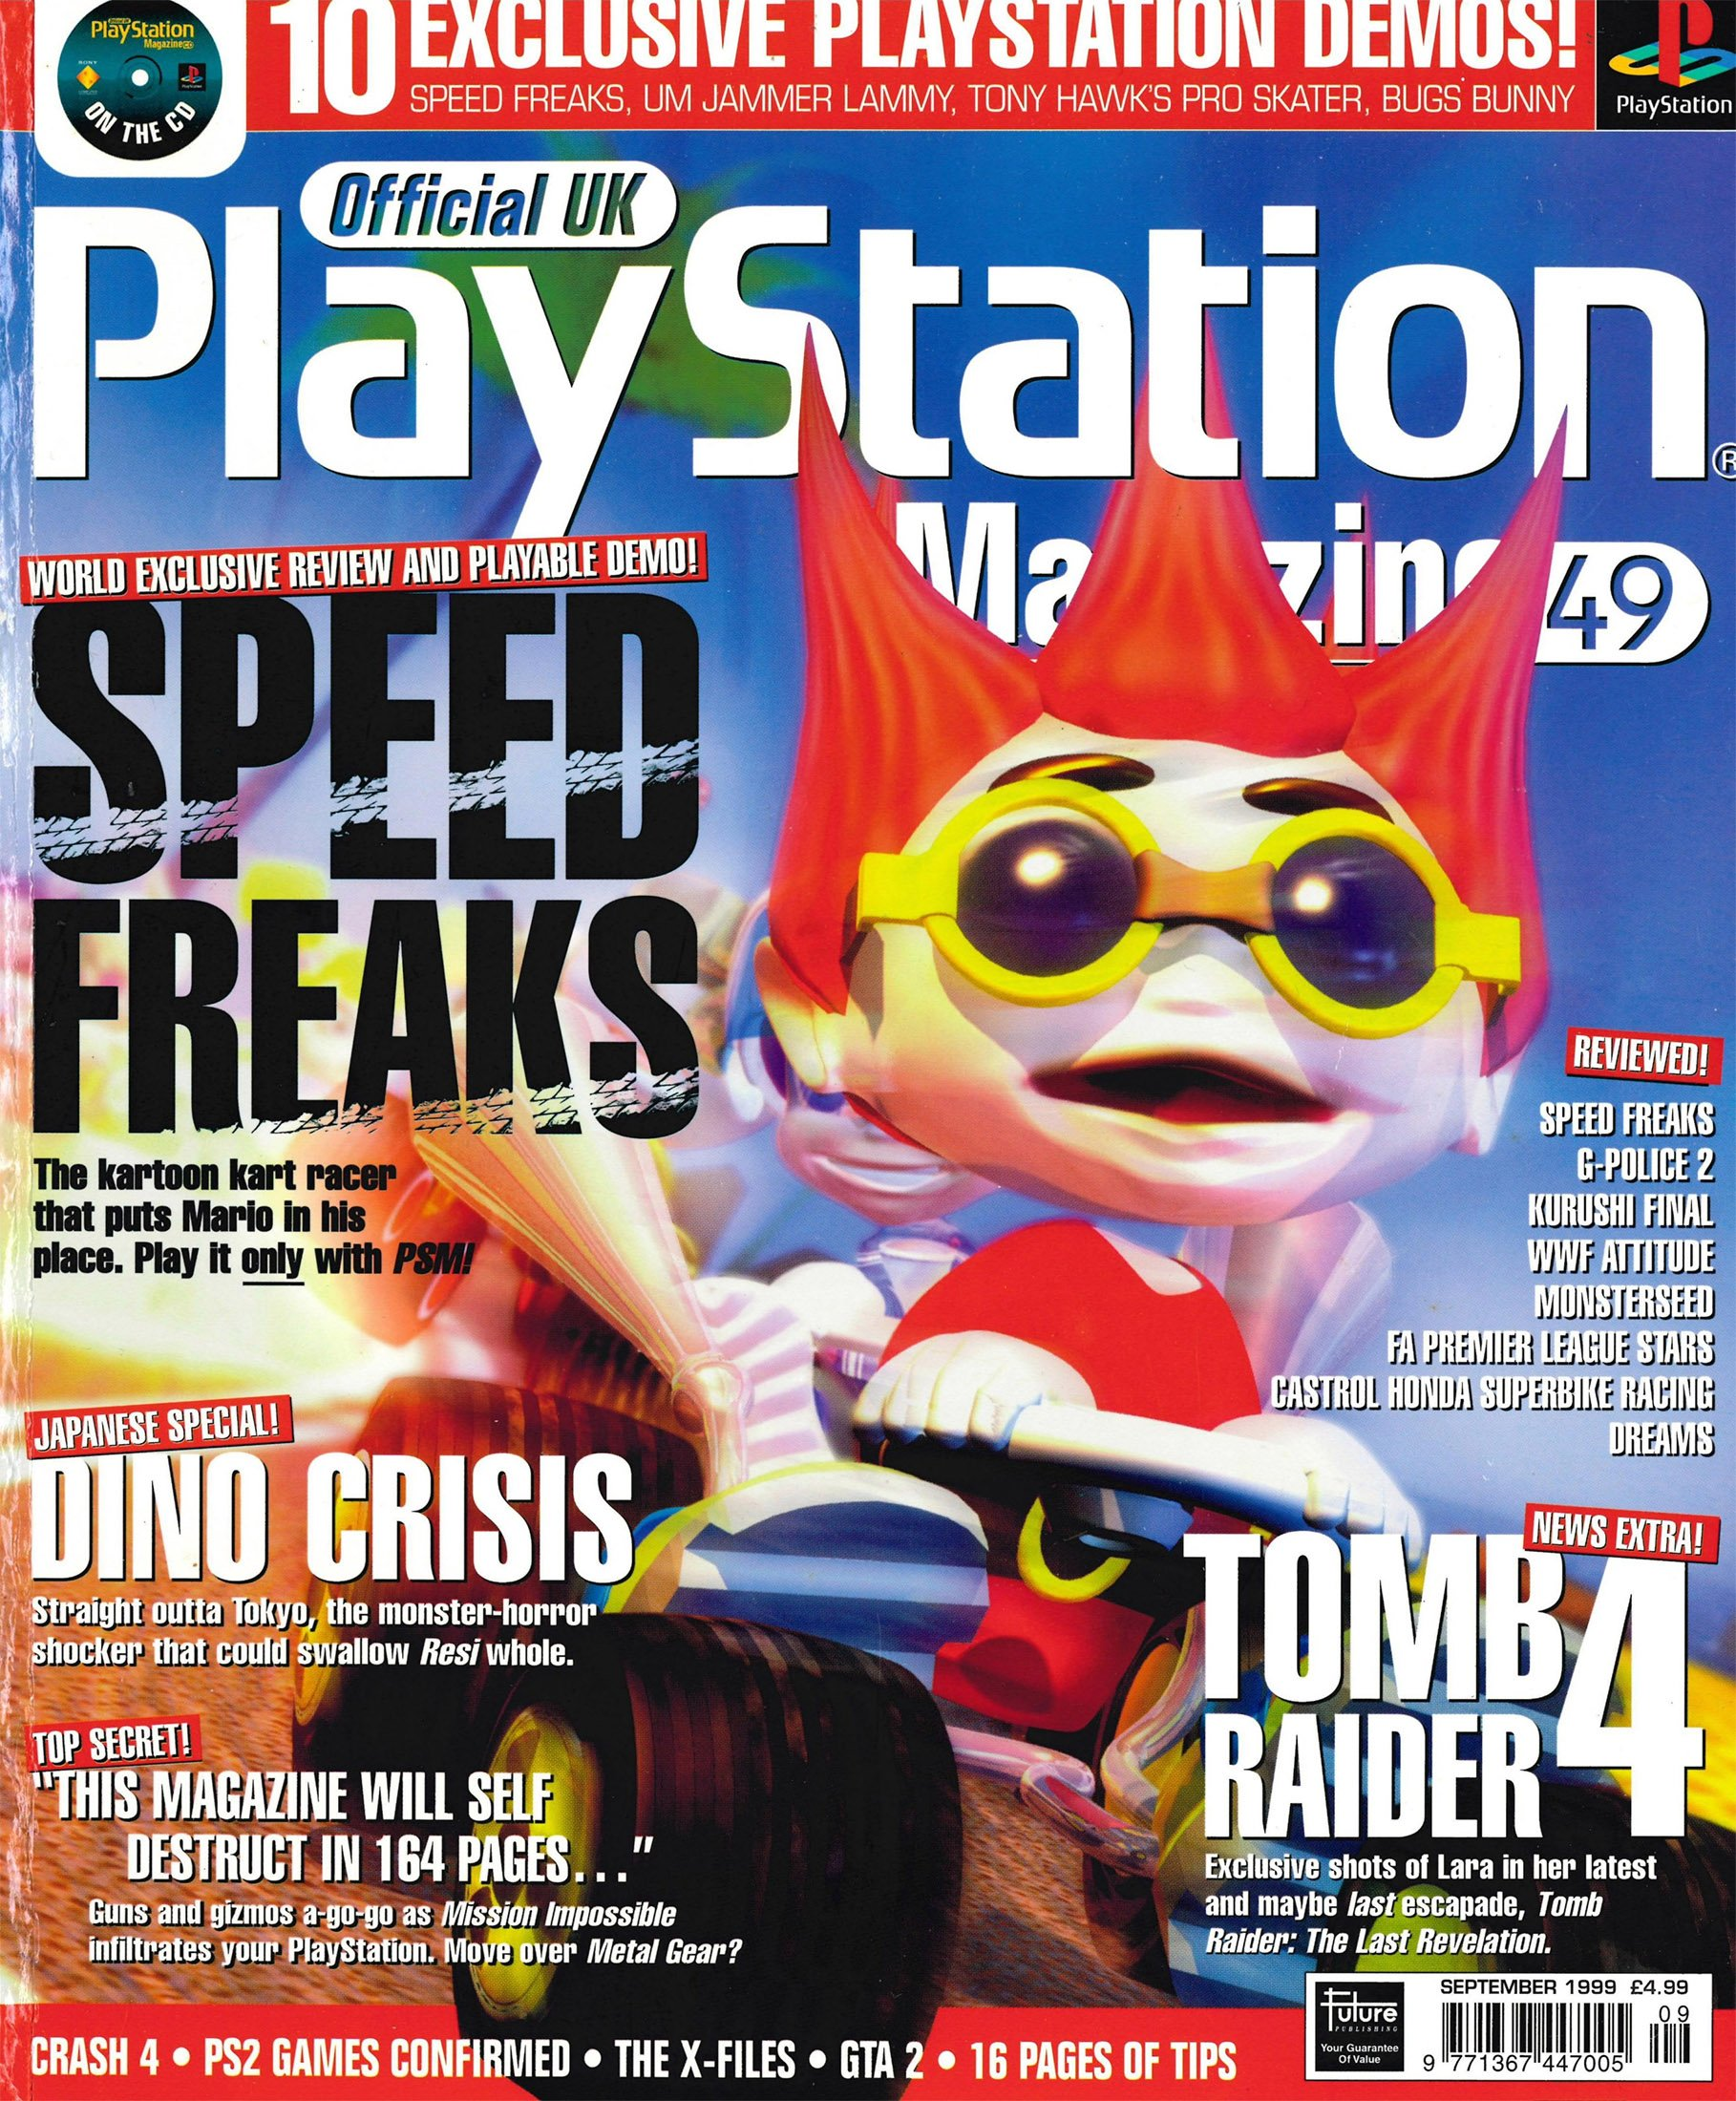 Official UK PlayStation Magazine Issue 049 (September 1999)